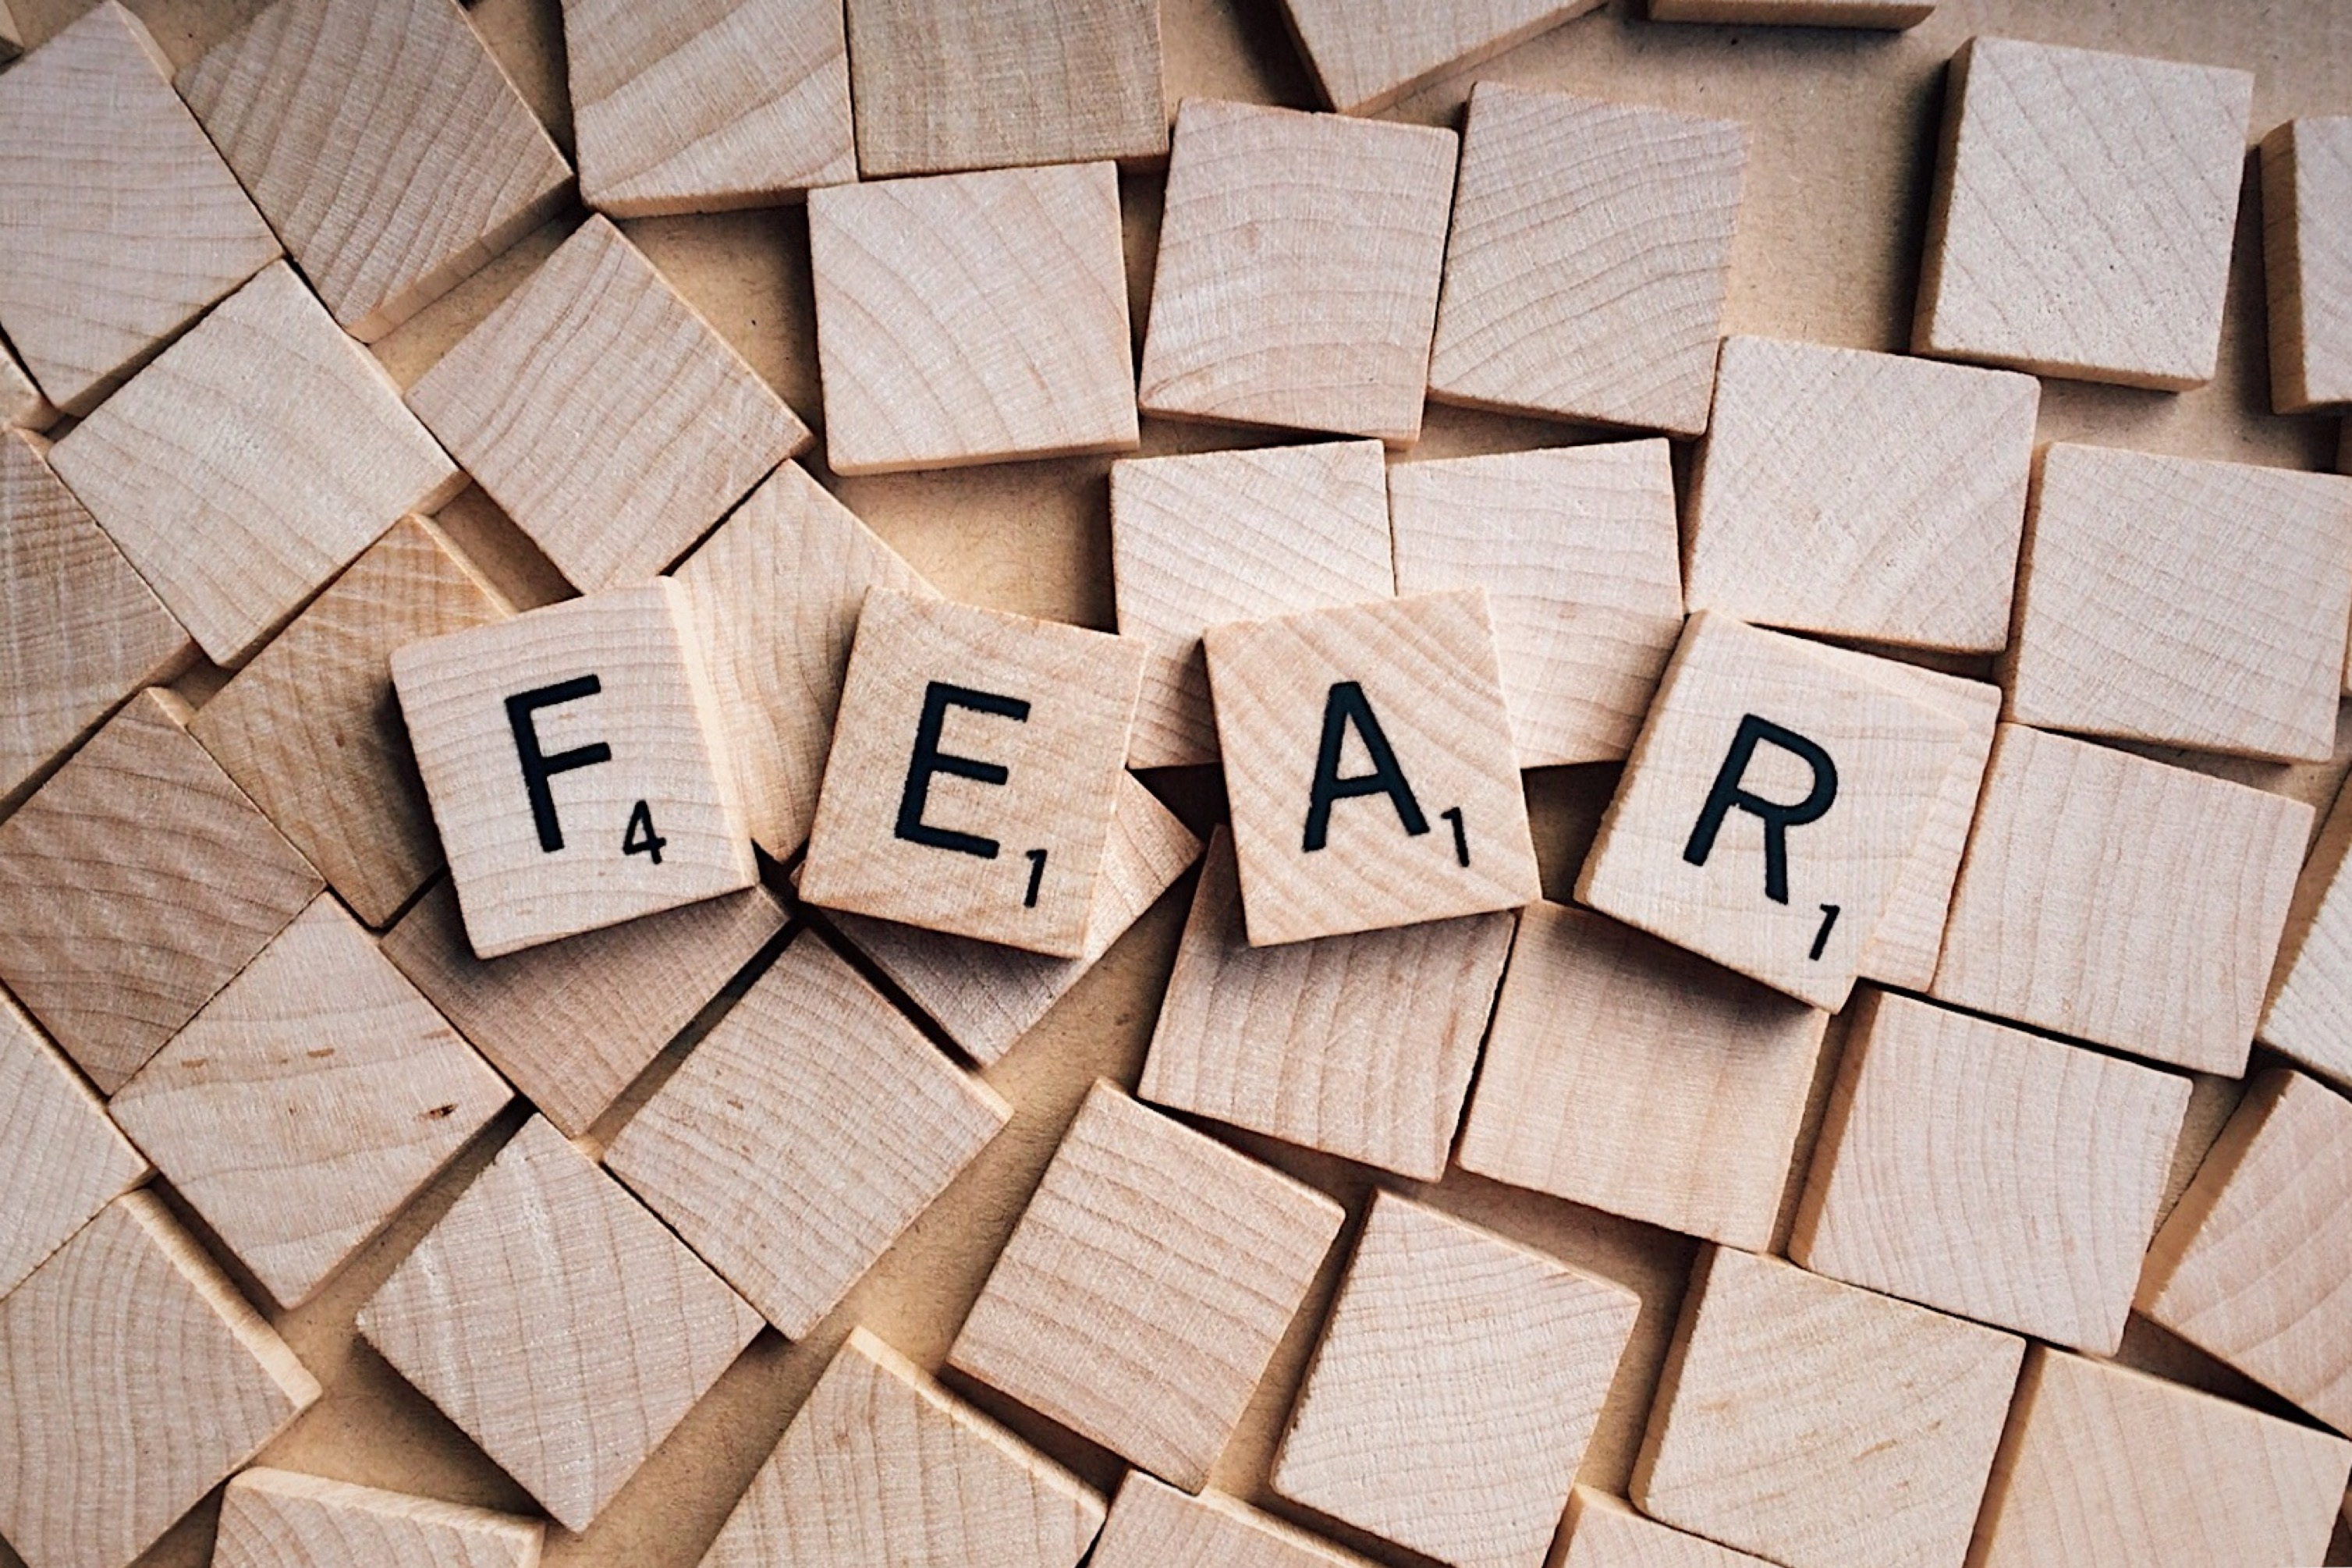 the creative writing my fears The time is now offers a weekly writing prompt (we'll post a poetry prompt on tuesdays, a fiction prompt on wednesdays, and a creative nonfiction prompt on thursdays) to help you stay committed to your writing practice throughout the year.